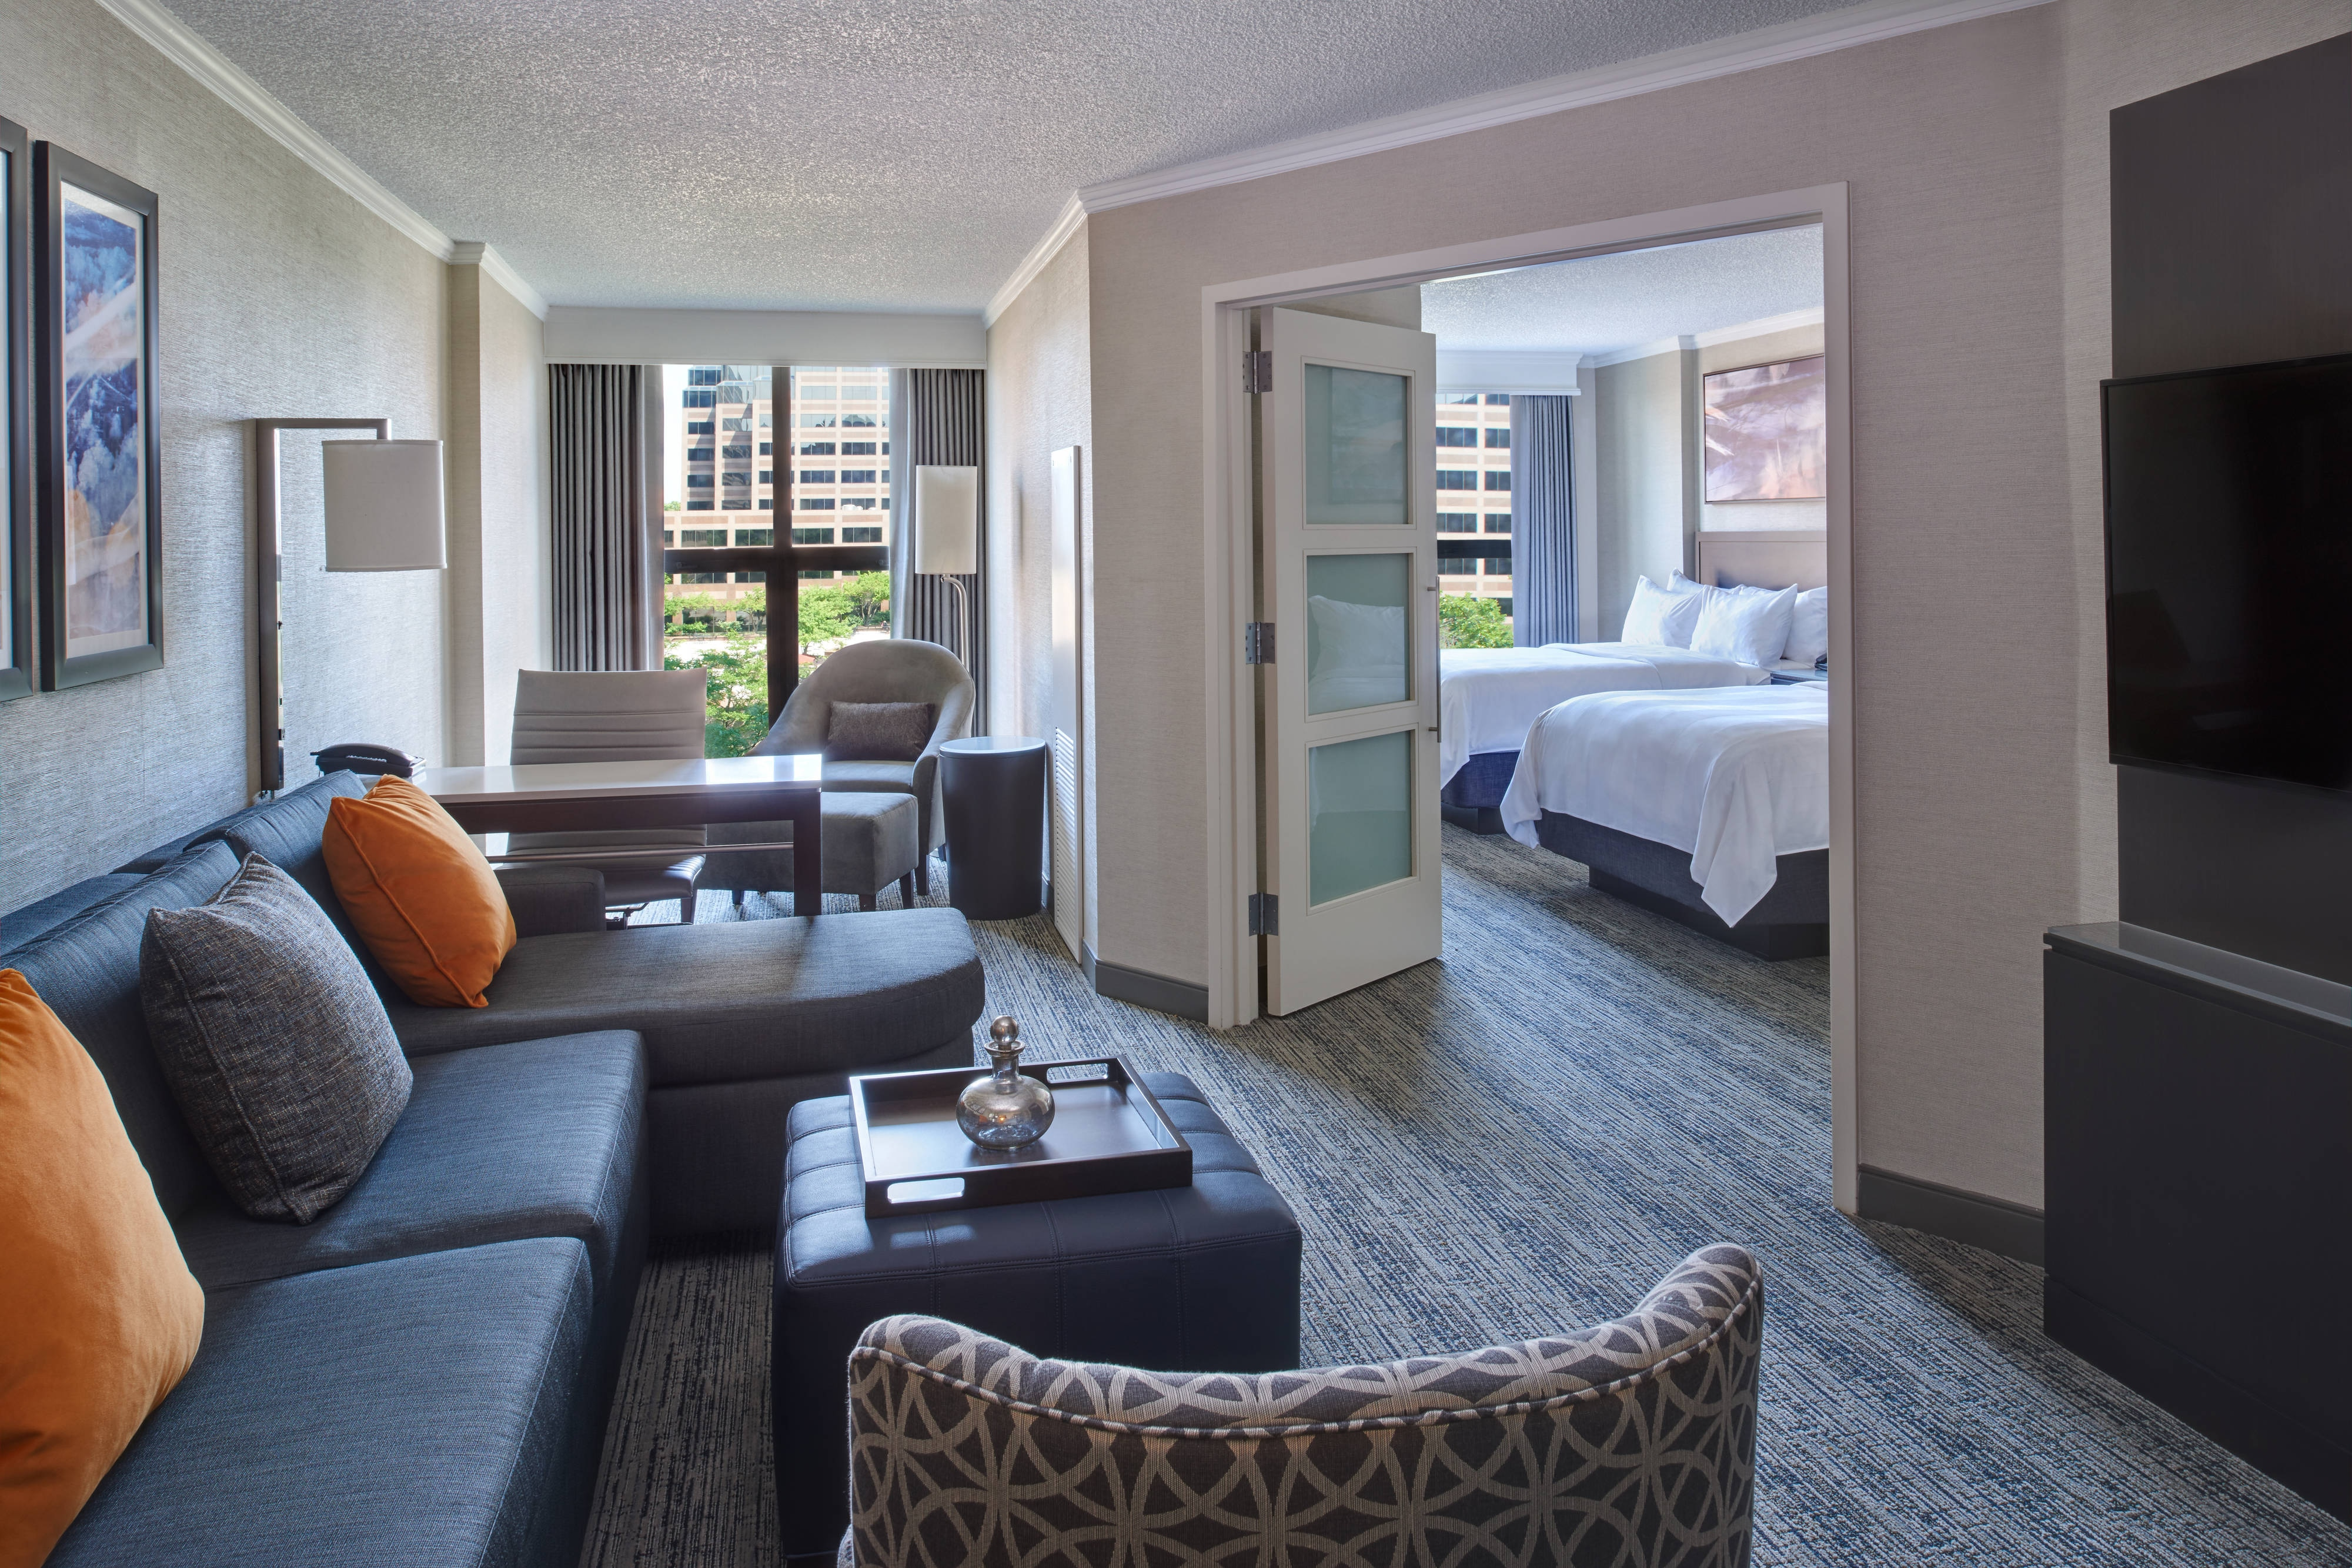 Hotels Near O Hare Chicago Marriott Suites O Hare Hotel